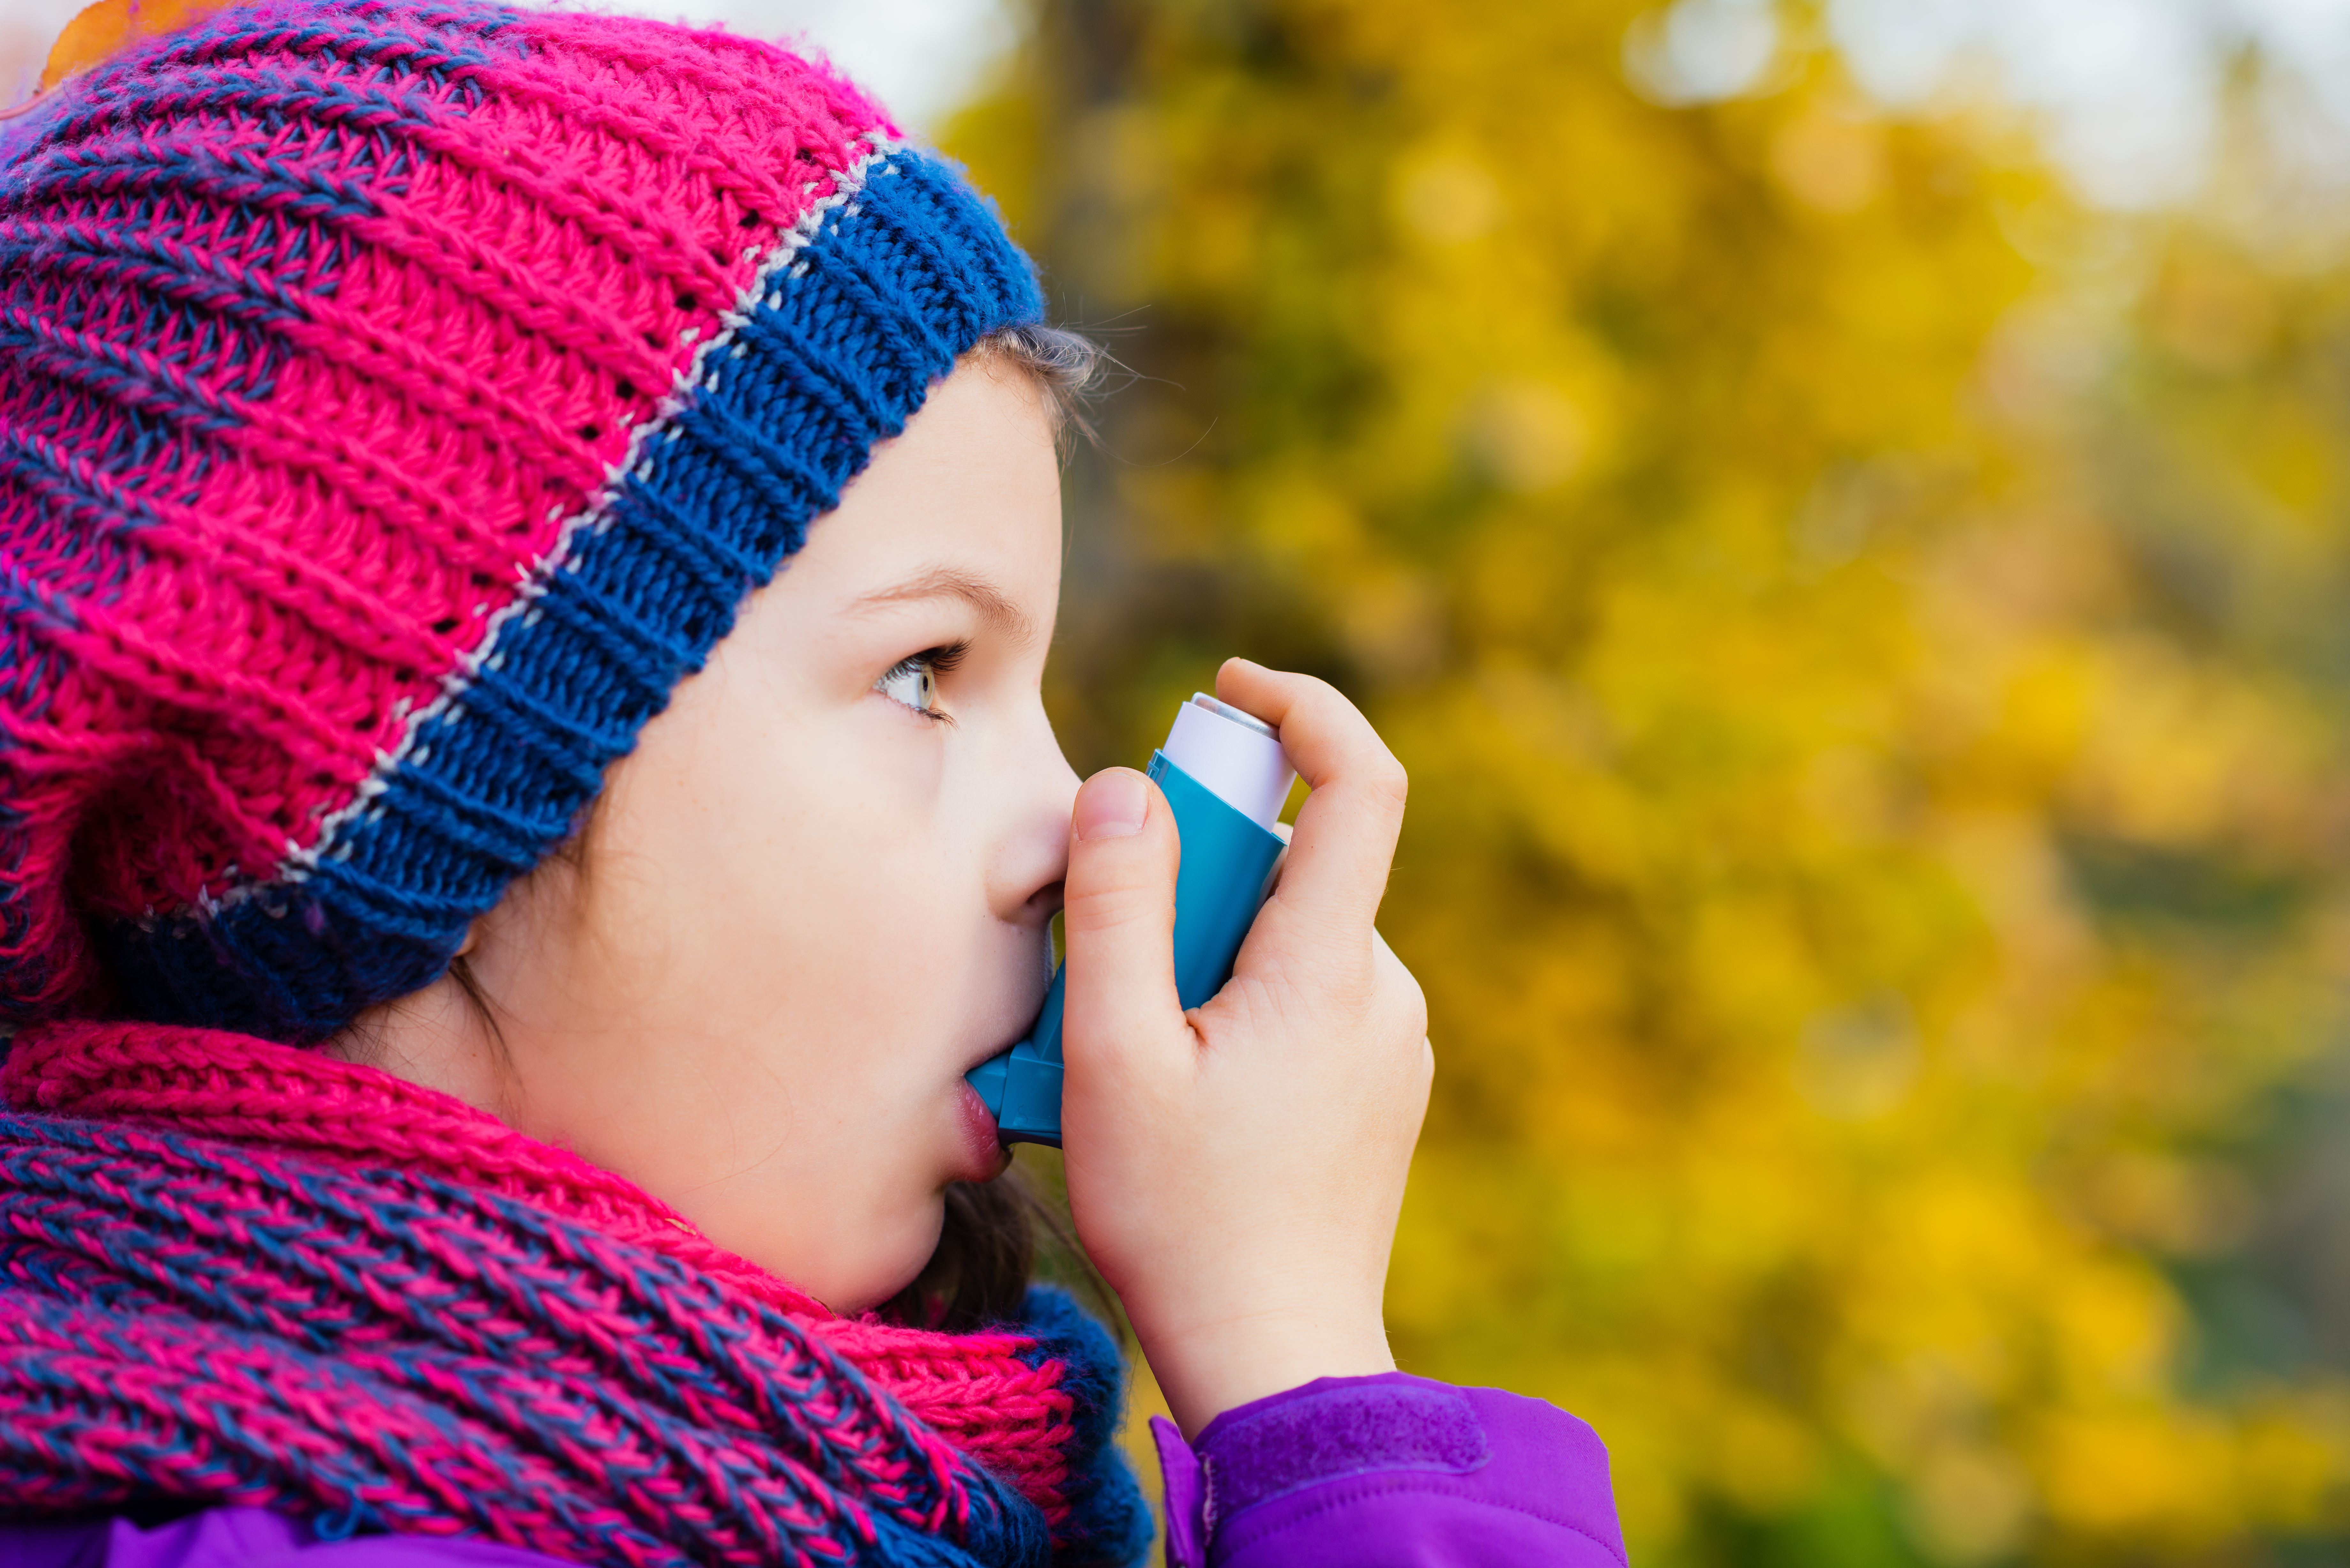 Girl Using Inhaler on a autumn day - to Treat Asthma Attack. Inhalation treatment of respiratory diseases. Shallow depth of field. Child Allergy Asthma concept.